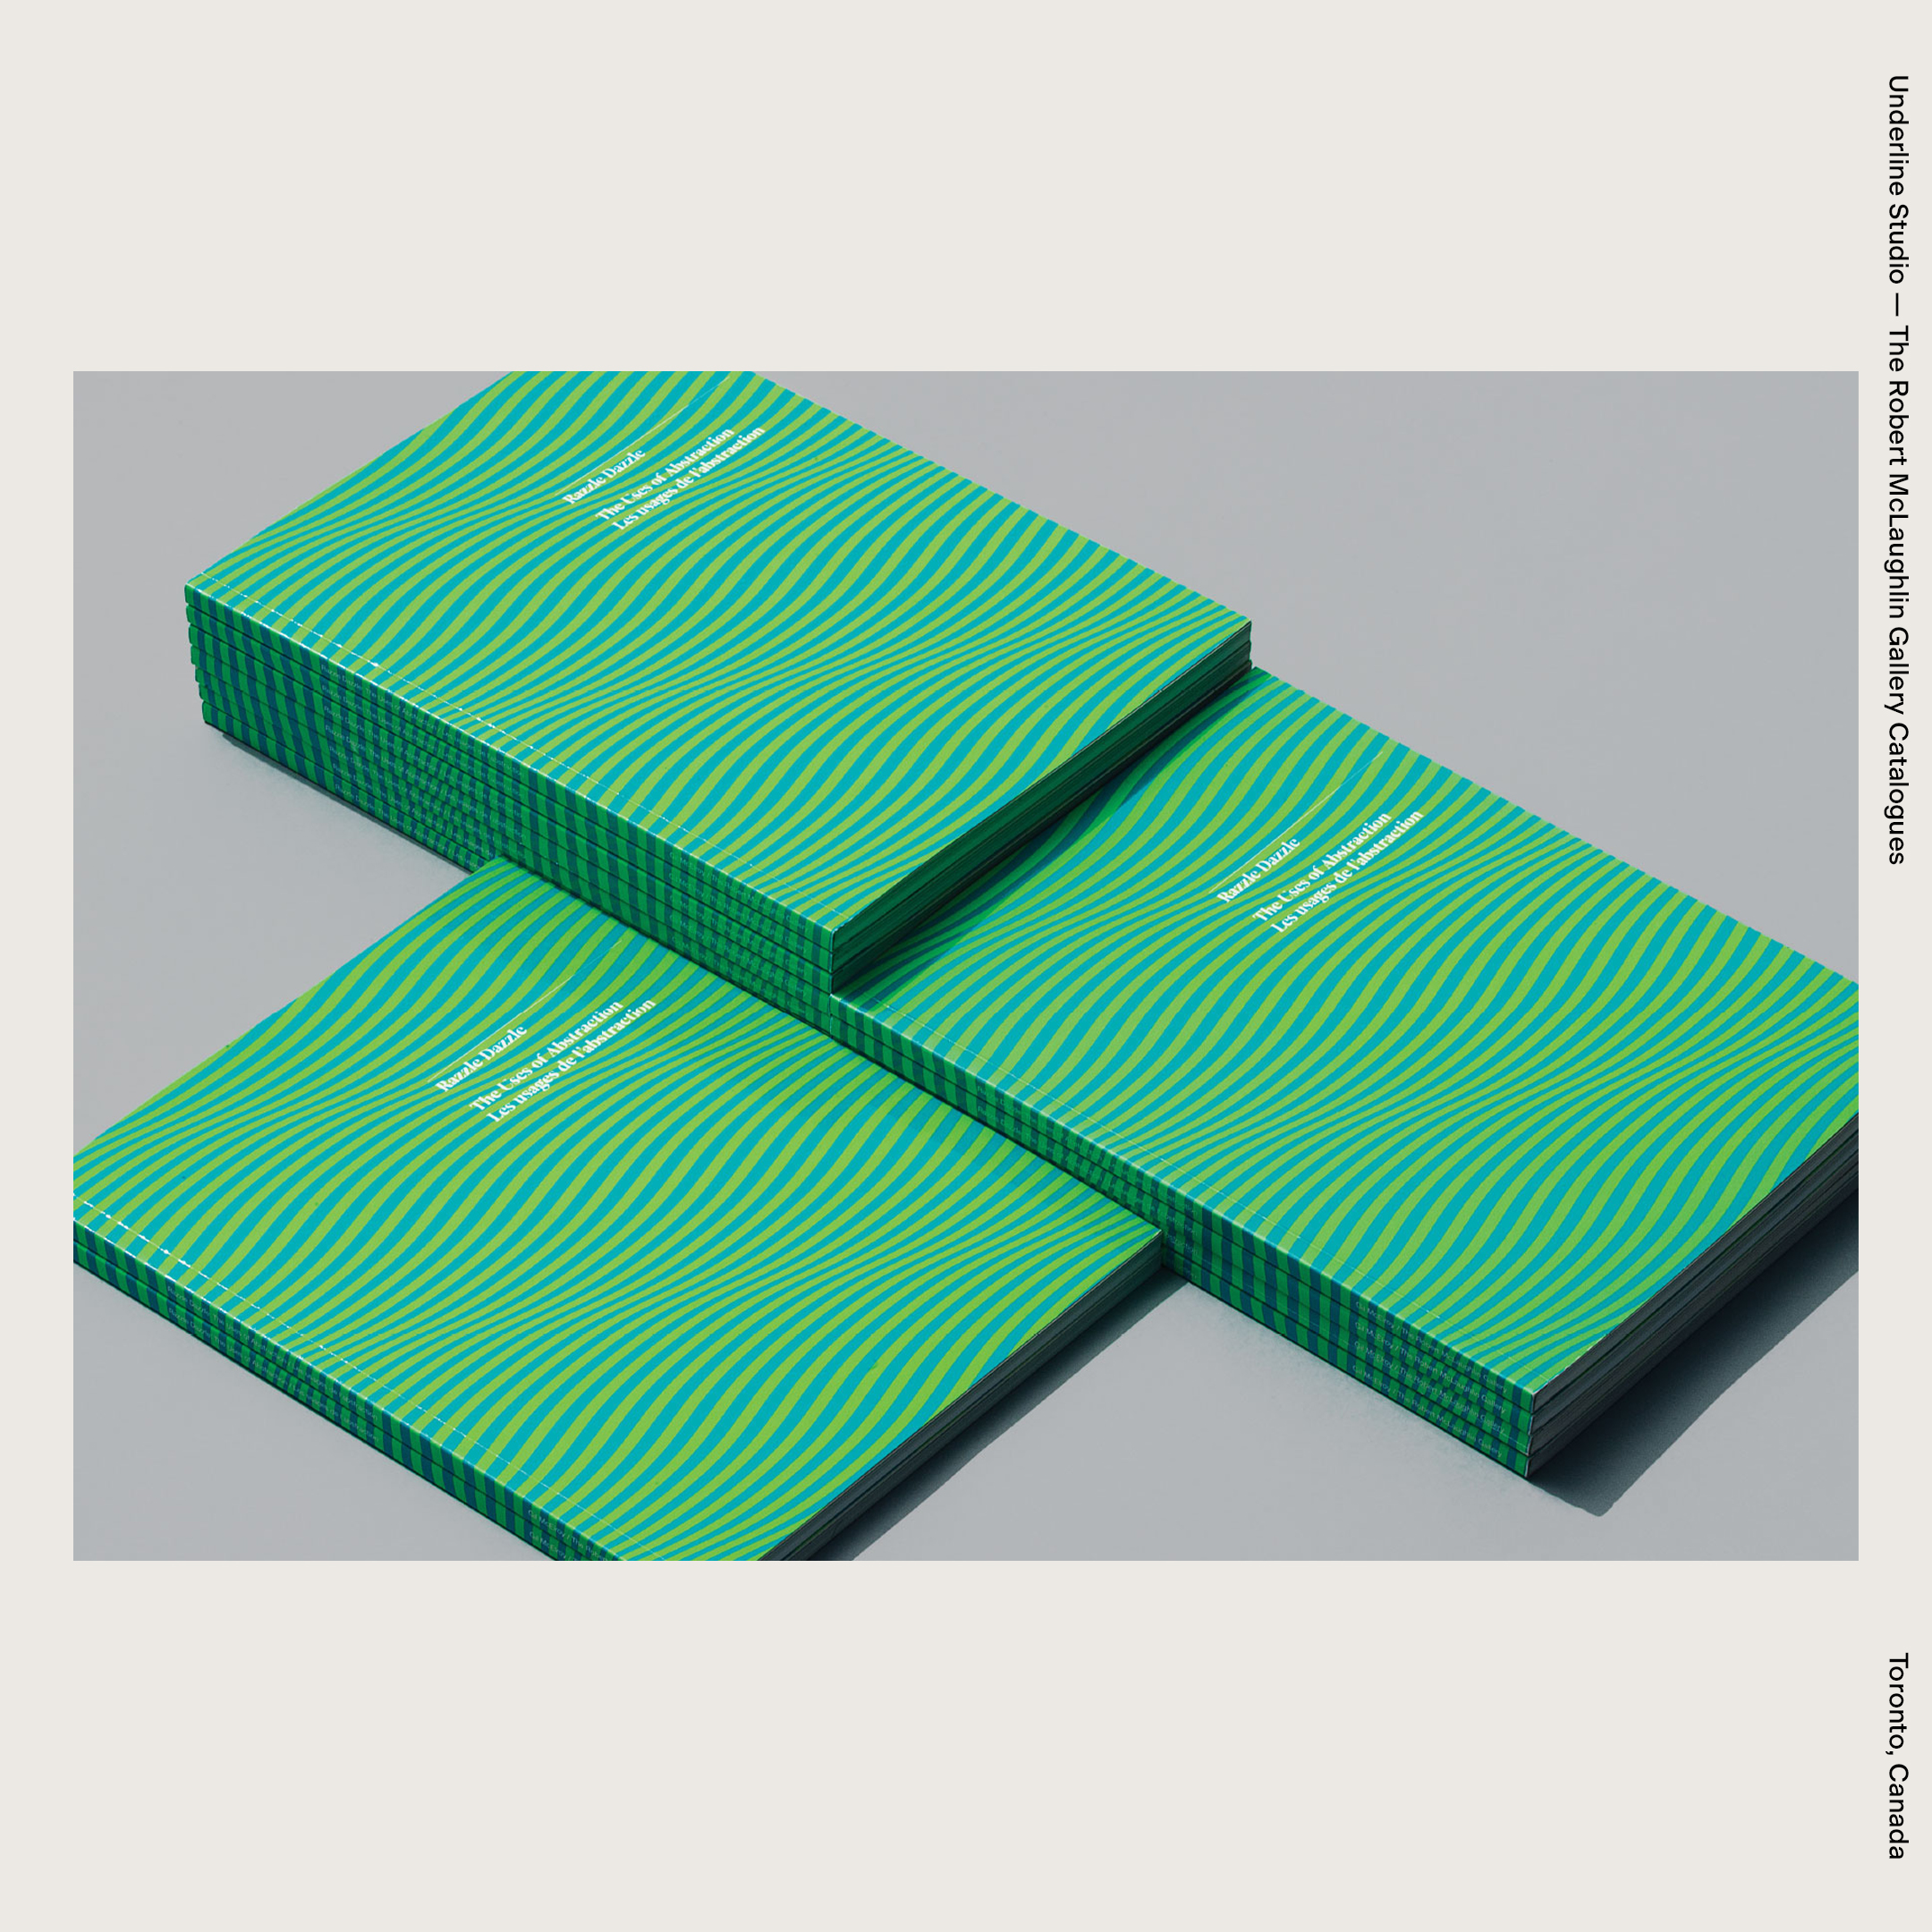 Underline Studio — The Robert McLaughlin Gallery Catalogues